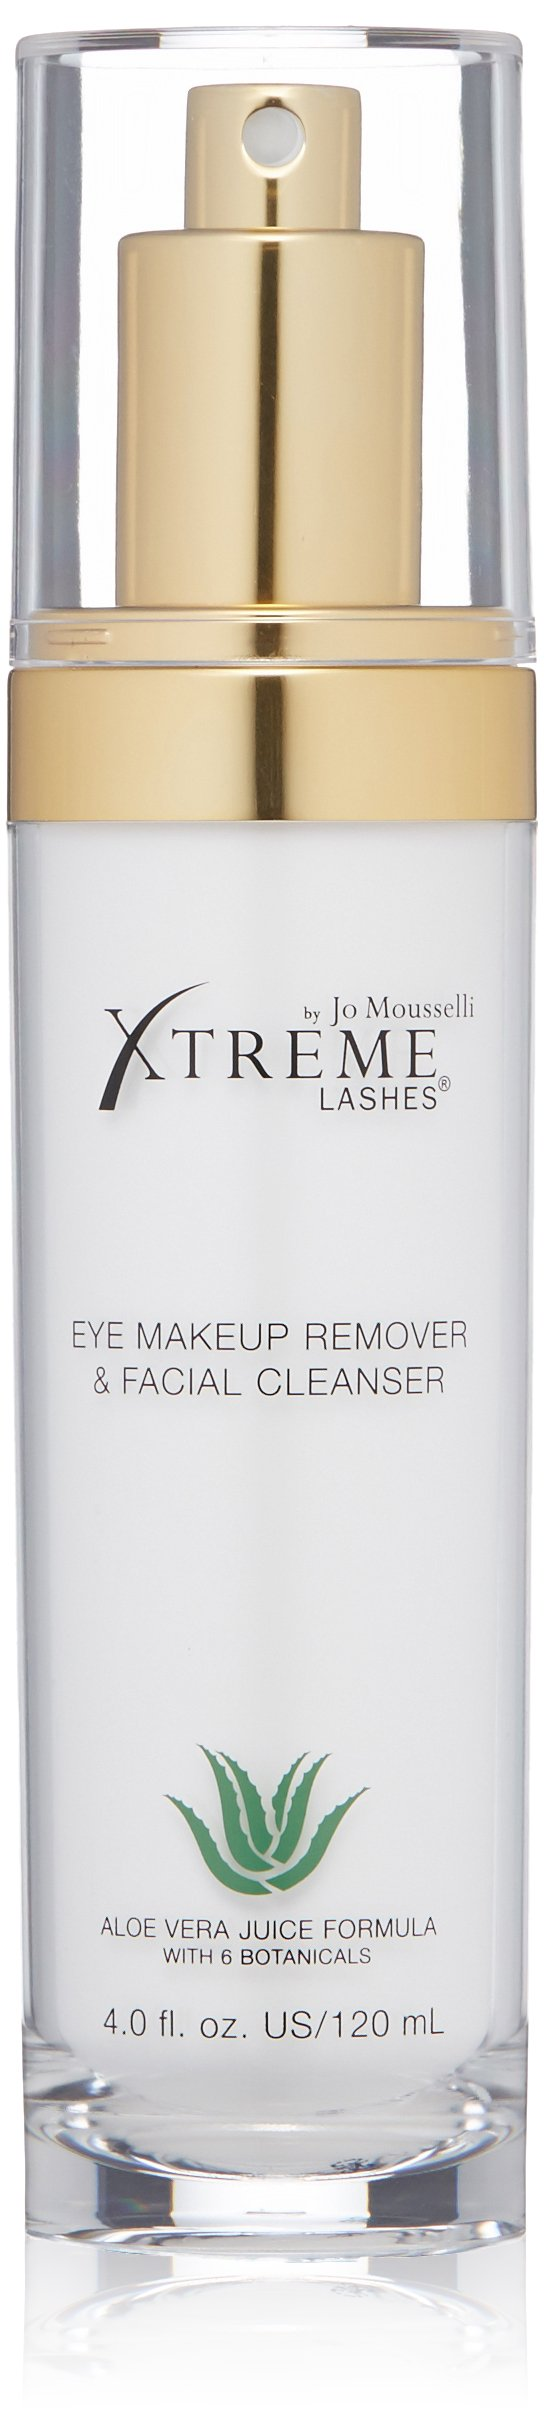 Xtreme Lashes Eye Makeup Remover & Facial Cleanser, 120 ml